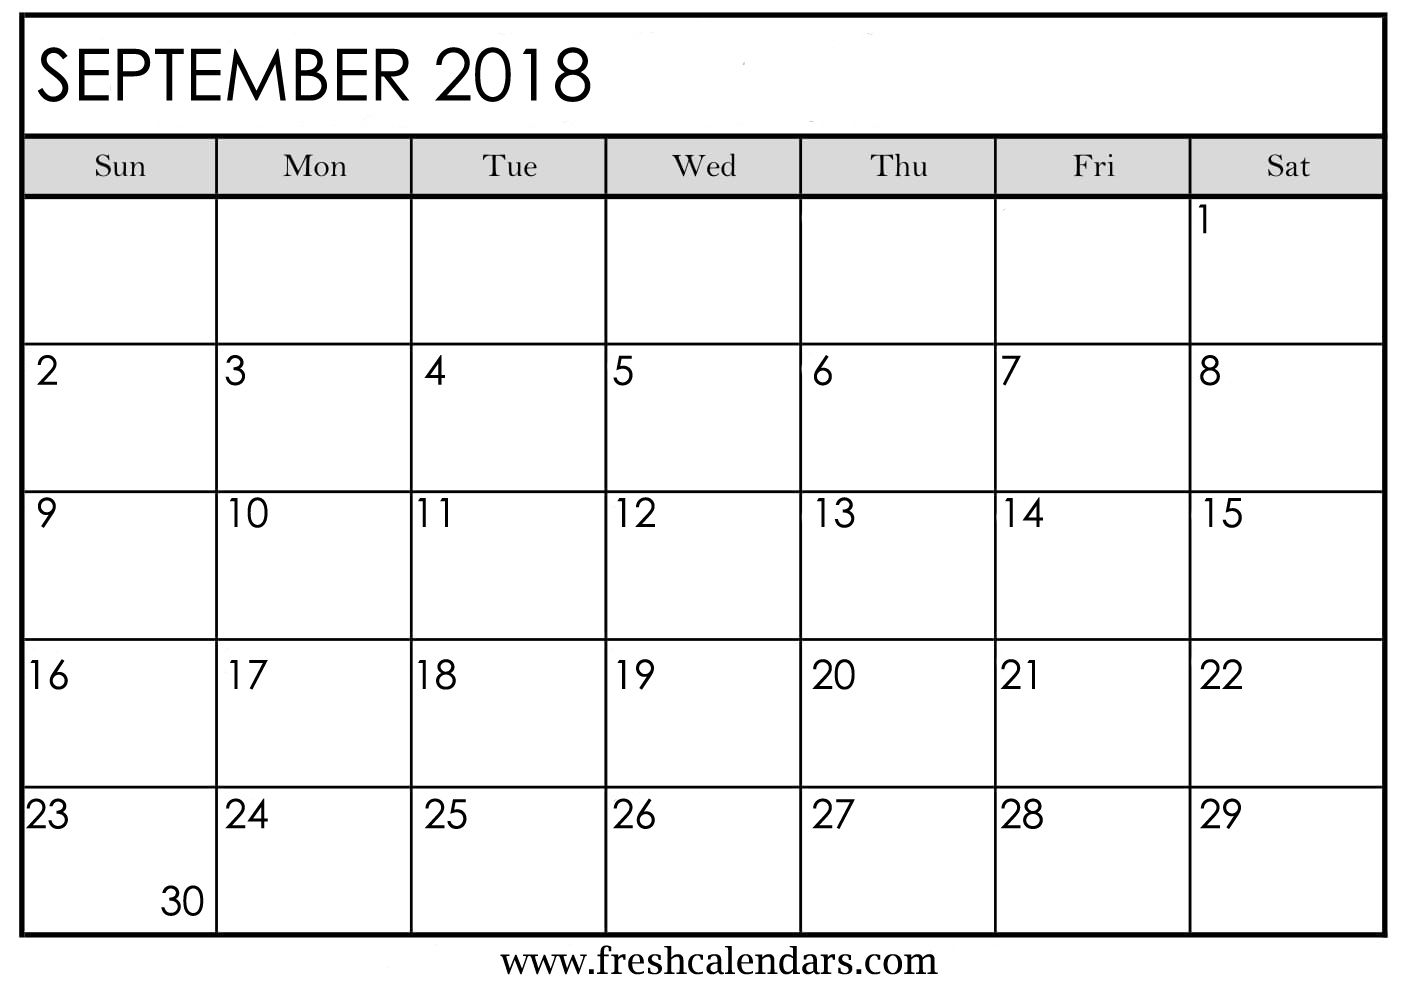 September 2018 Calendar Printable - Fresh Calendars for Full Sheet November Calendar Template